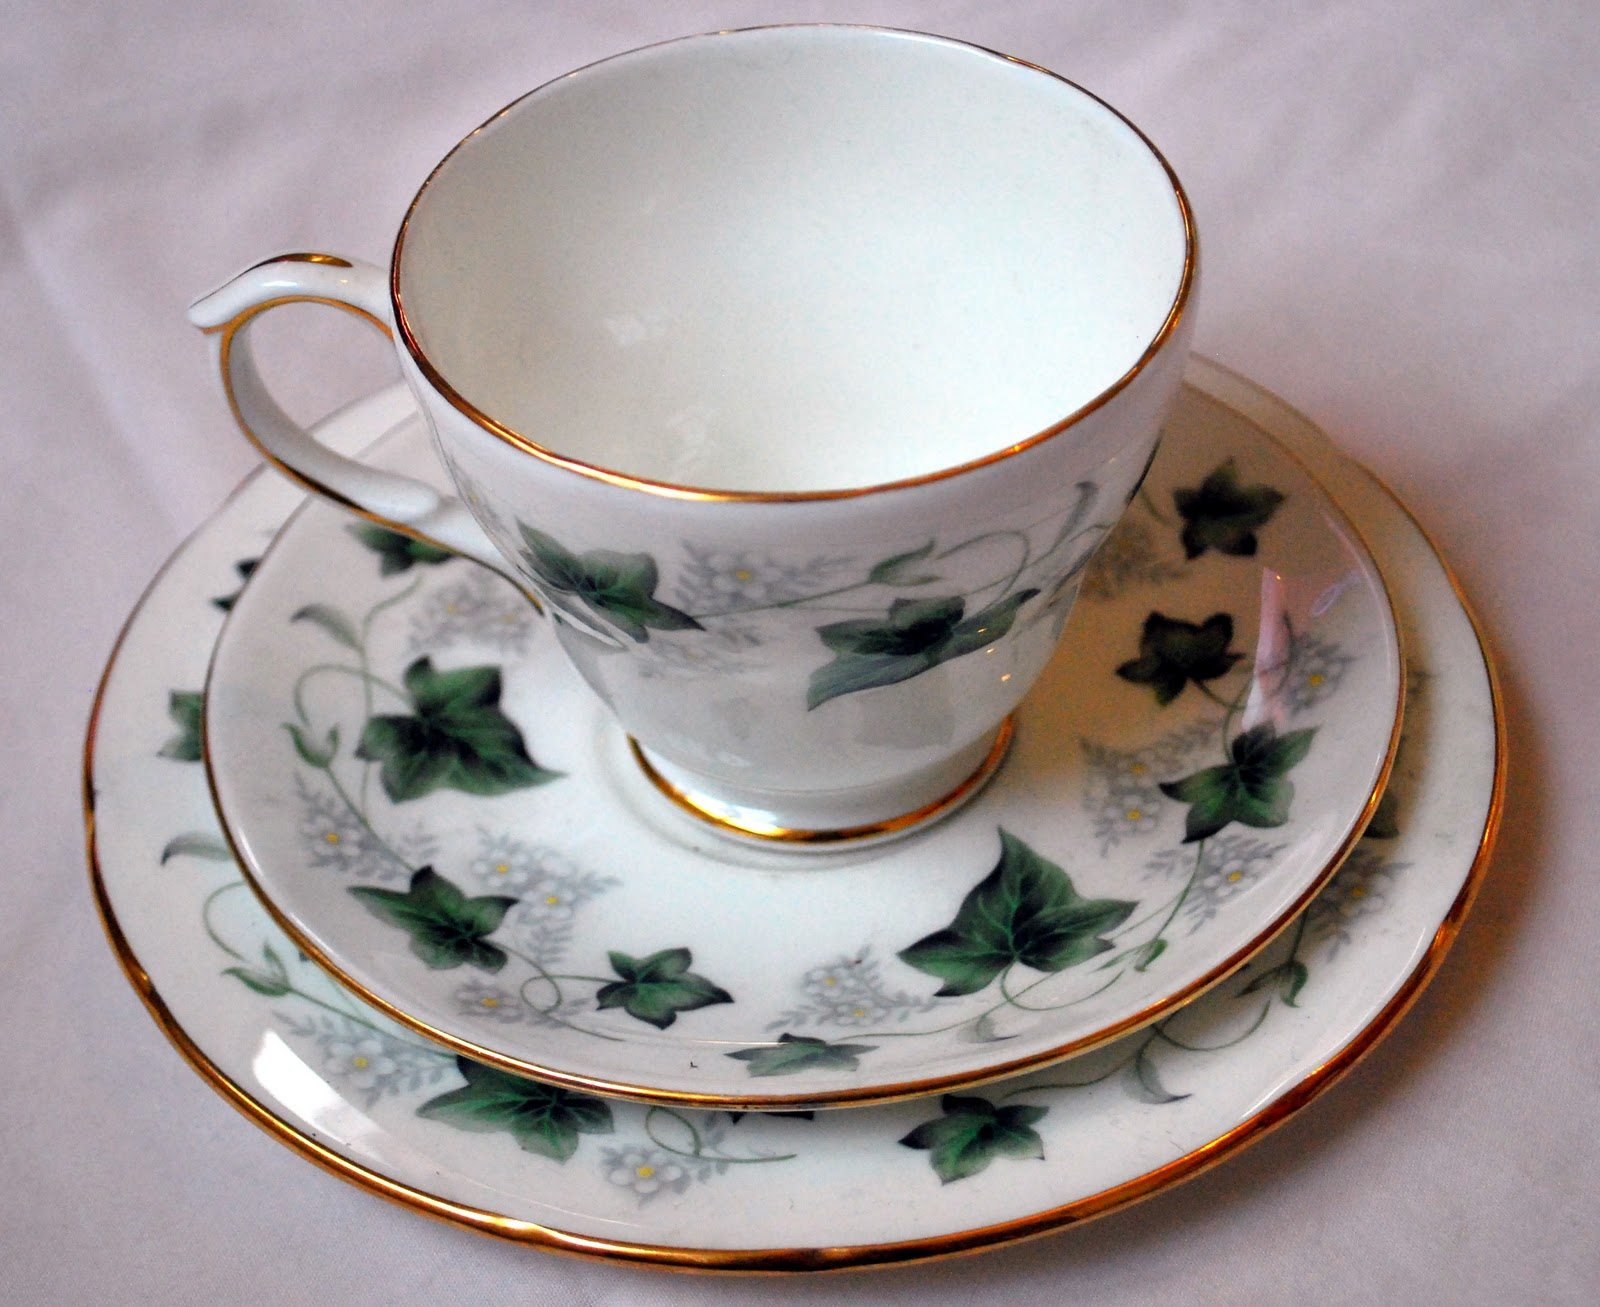 Ivy Teacup and Saucer